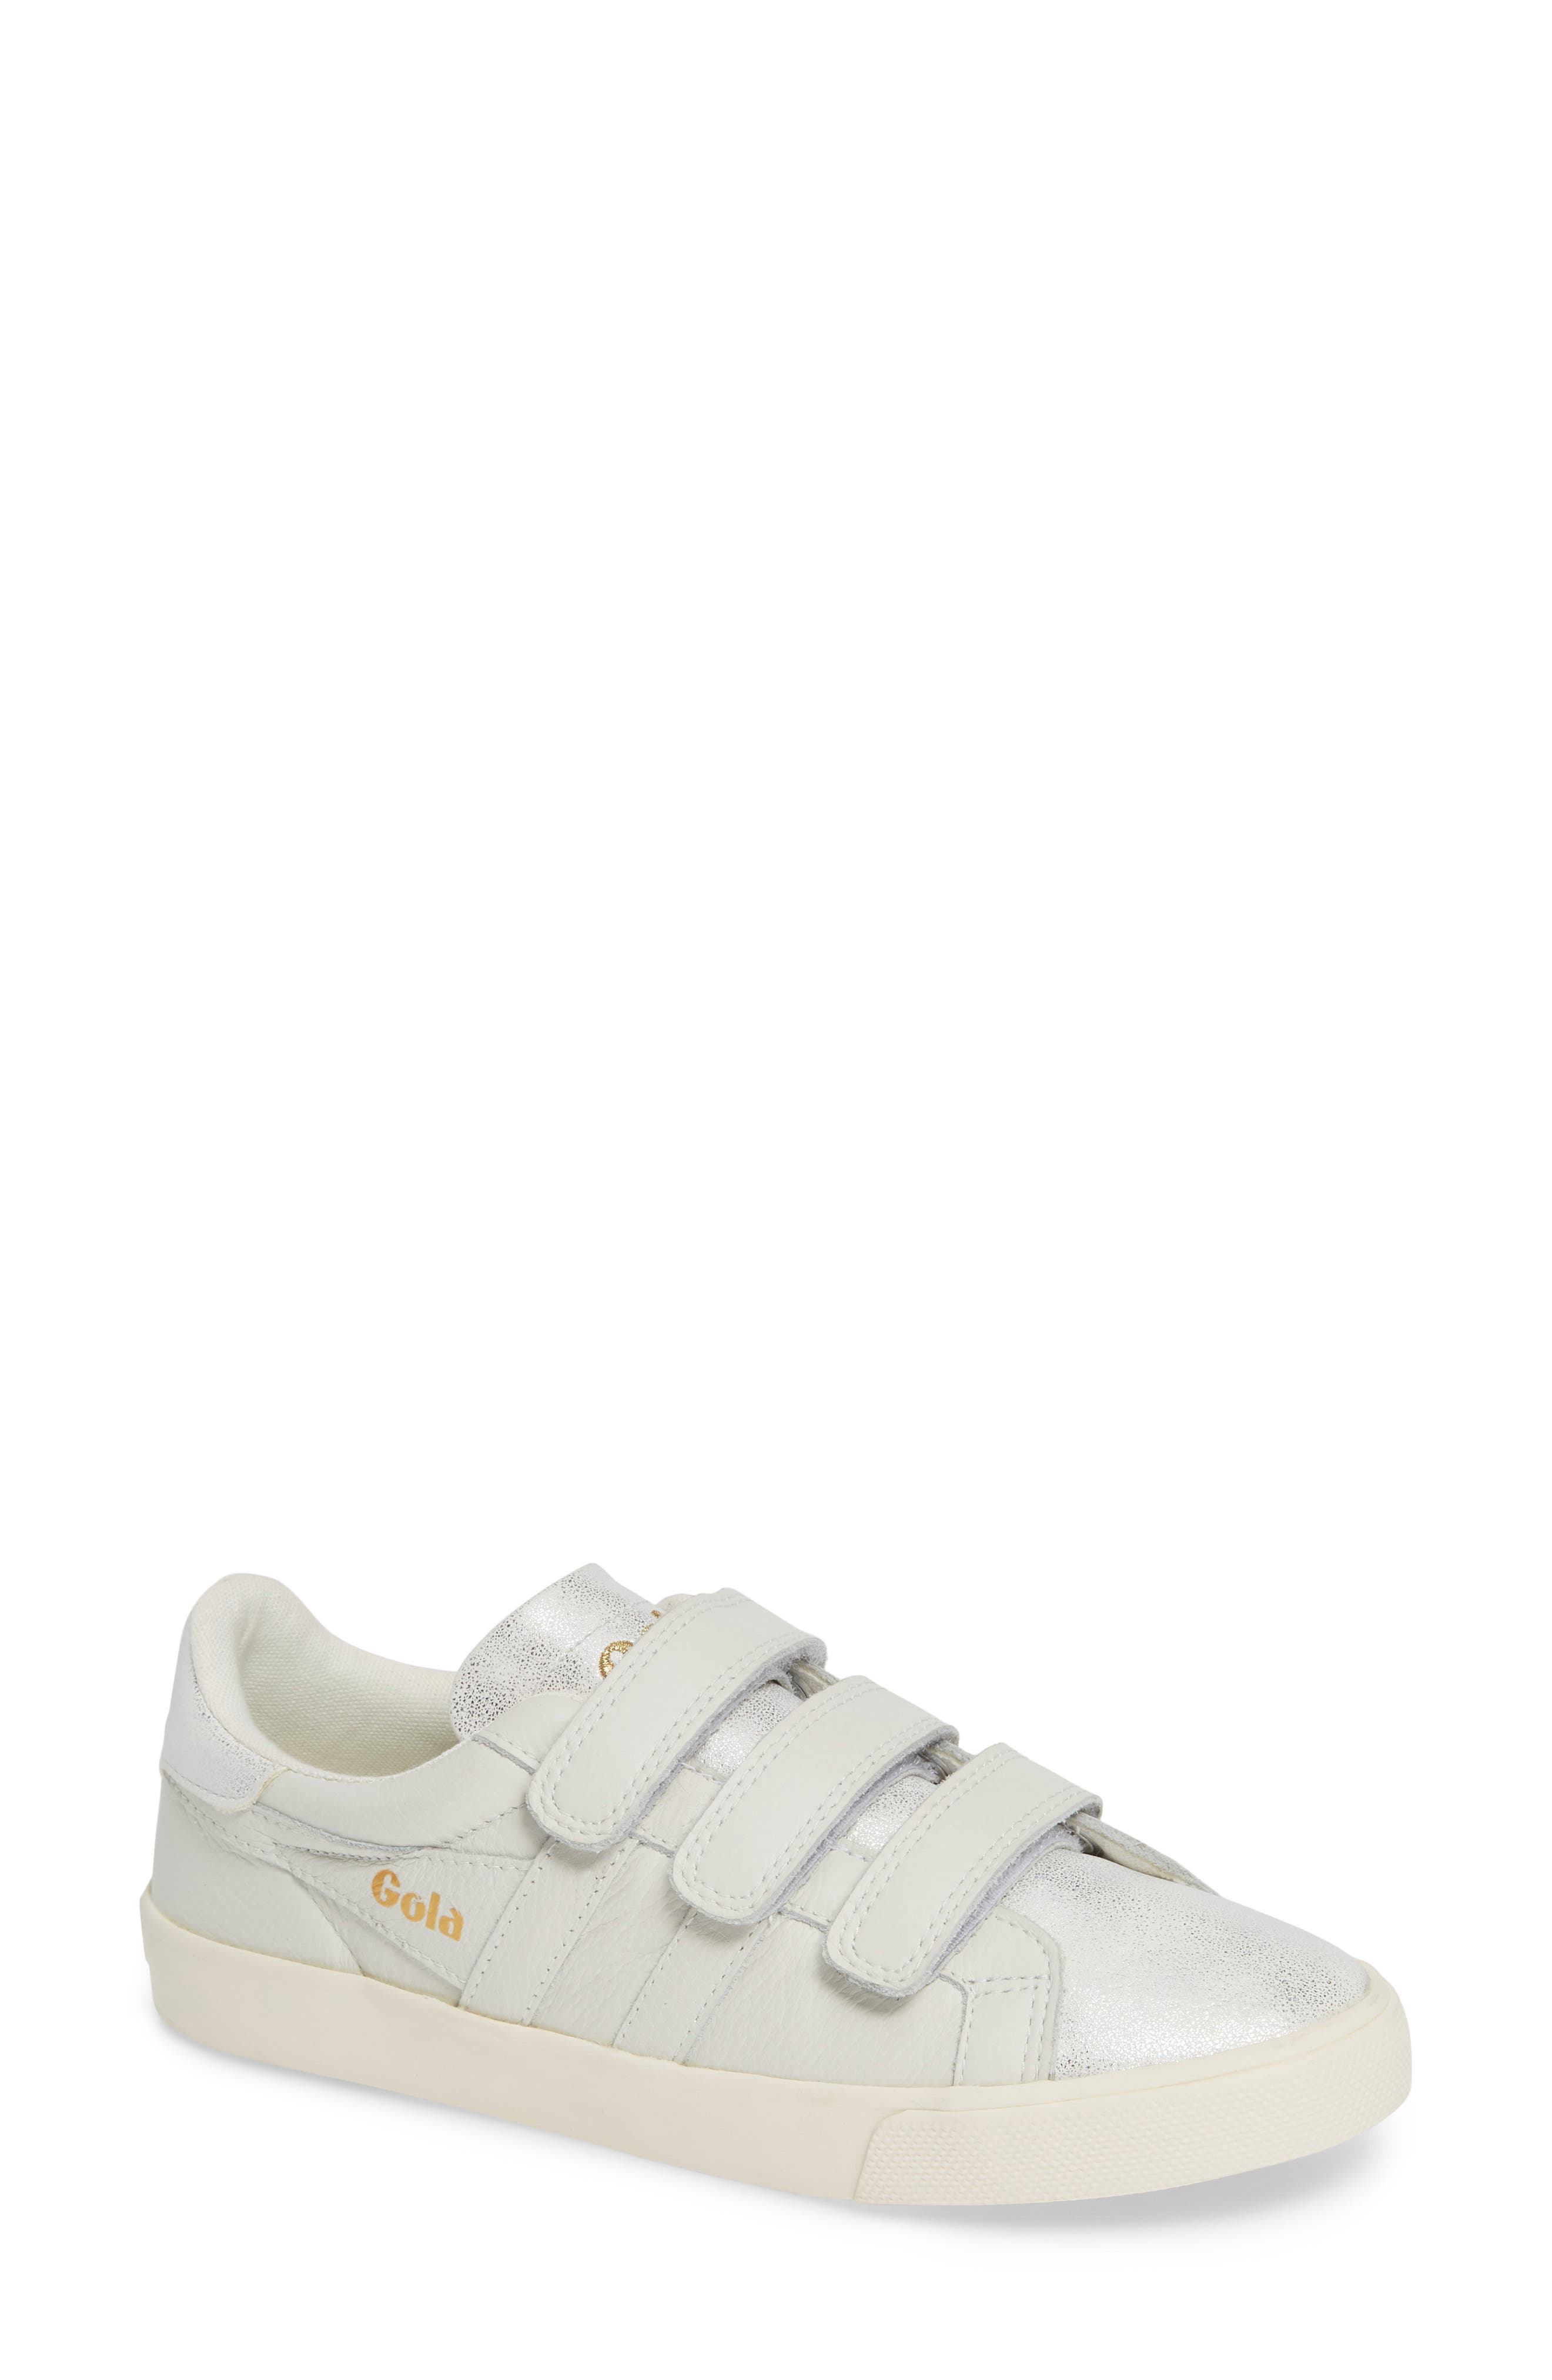 GOLA Orchid Sneaker in Off White